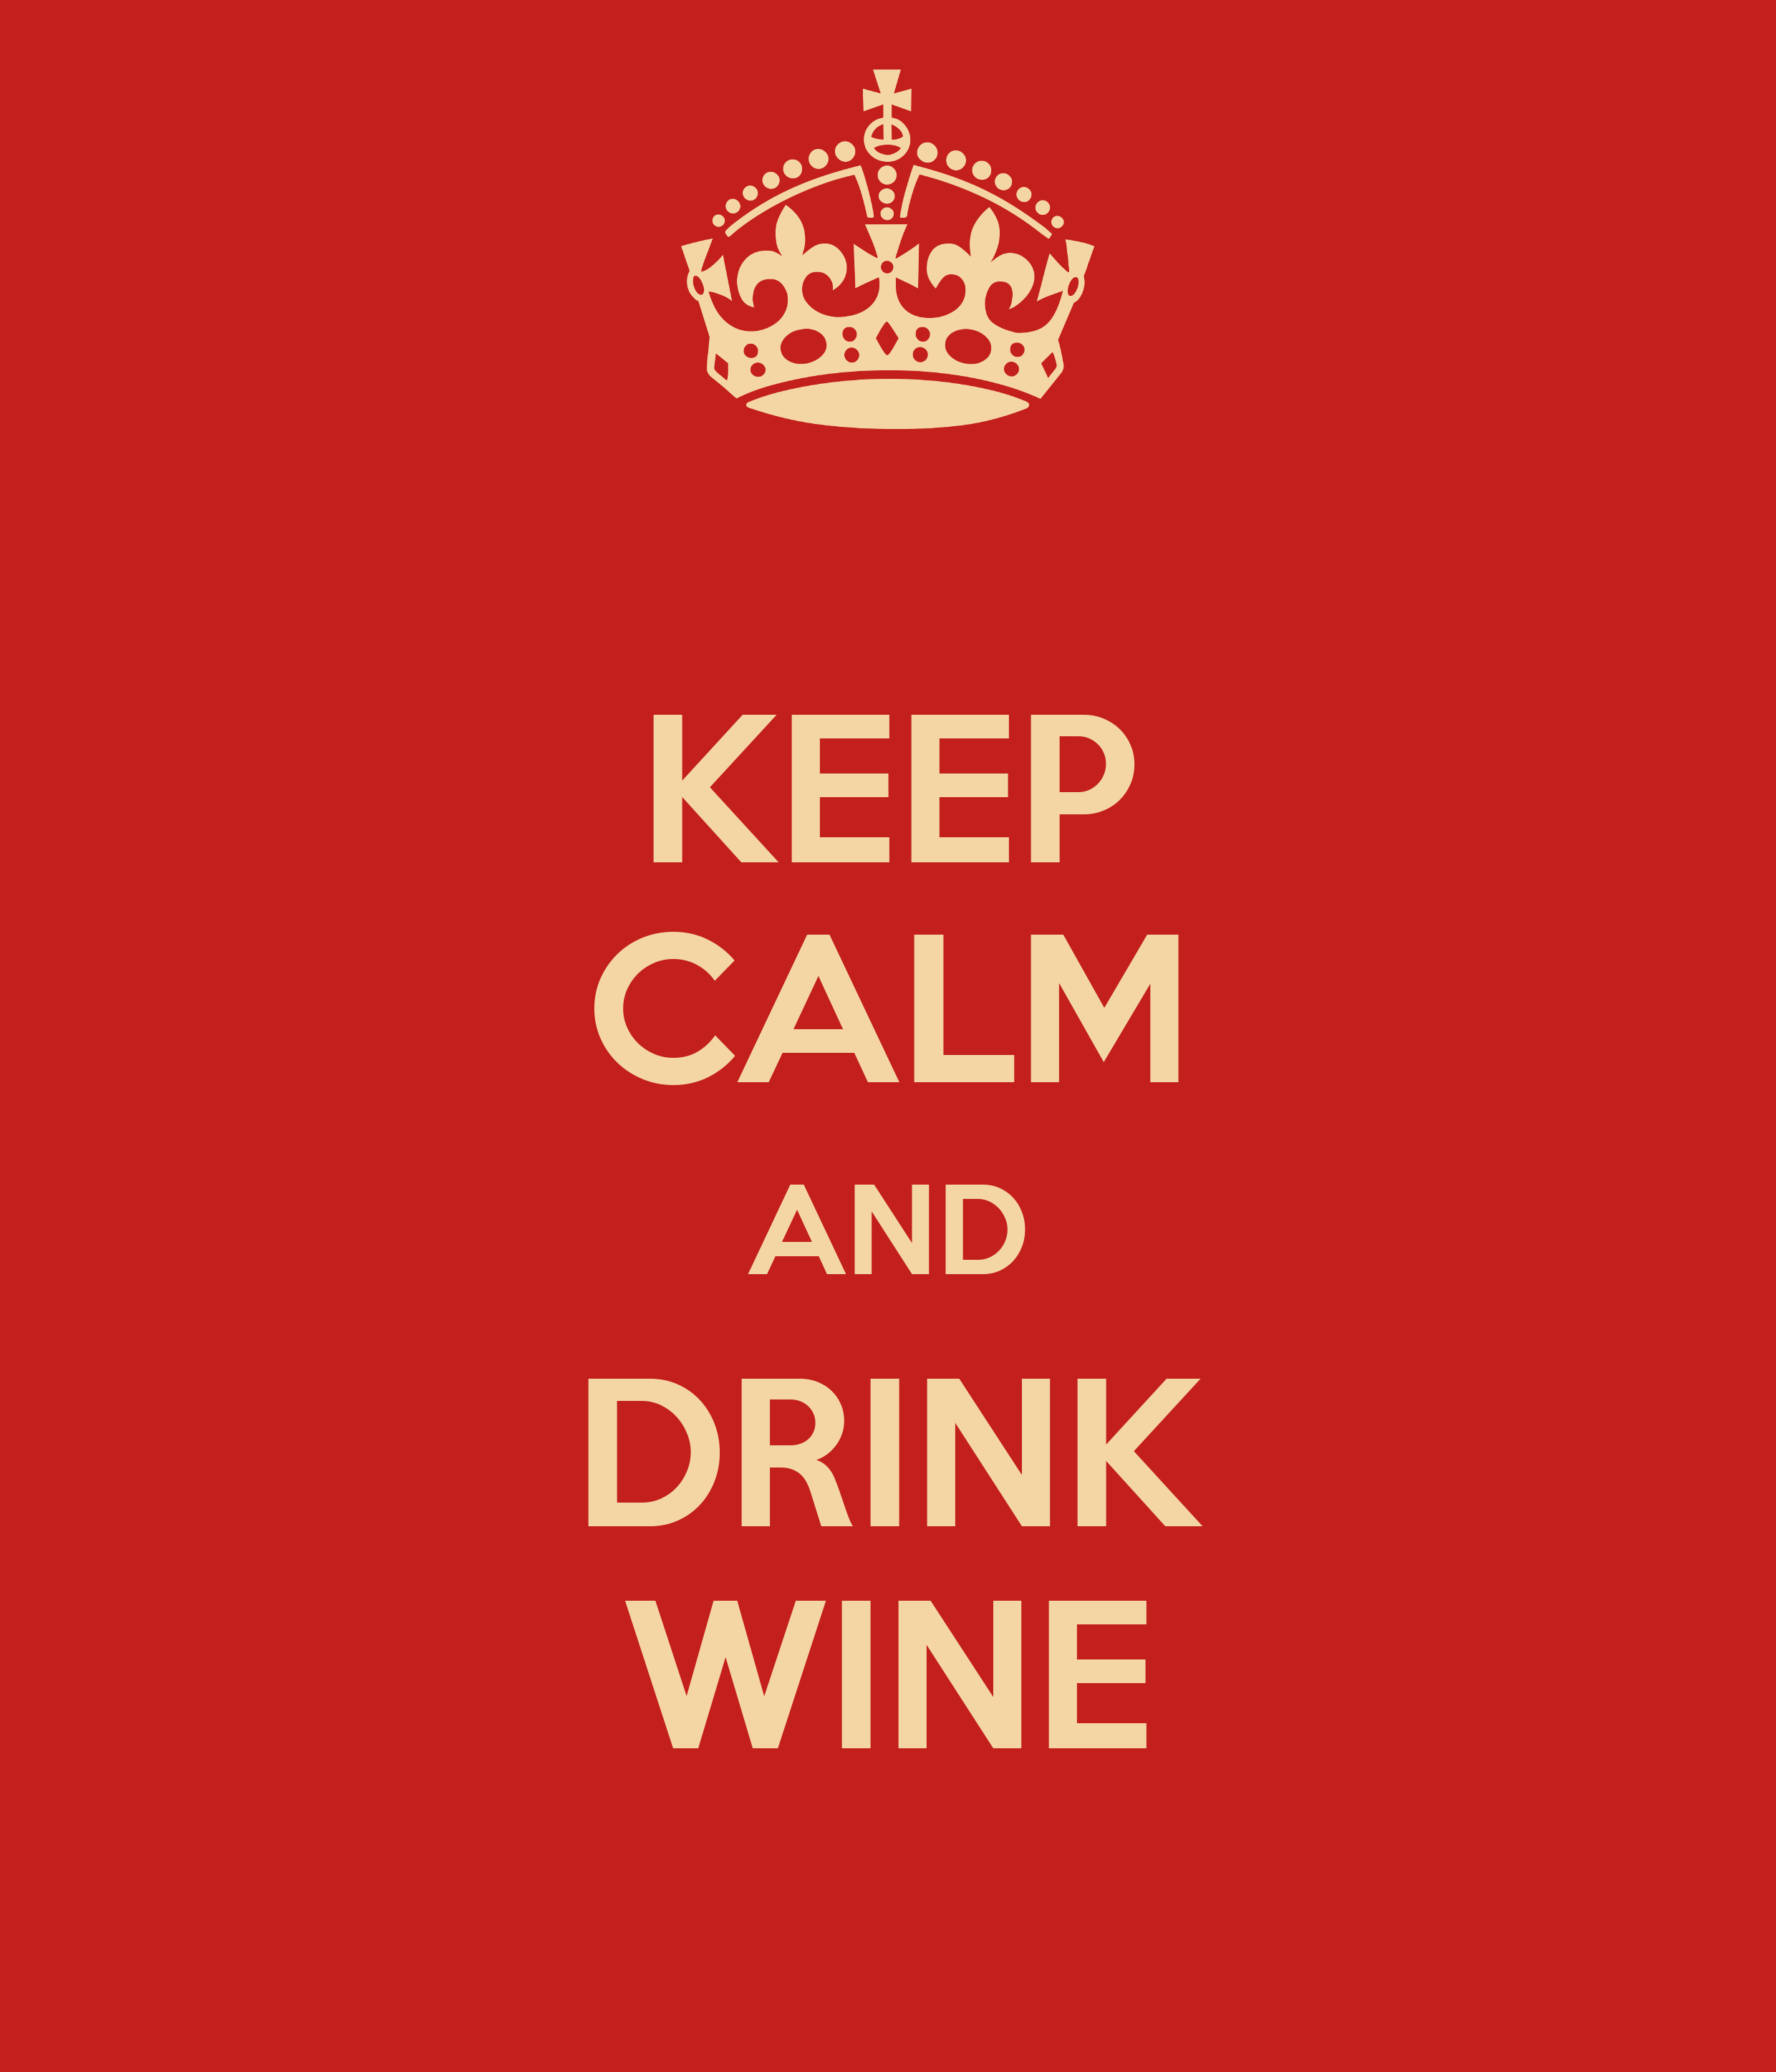 Wall Stickers Childrens Keep Calm And Drink Wine Keep Calm And Carry On Image